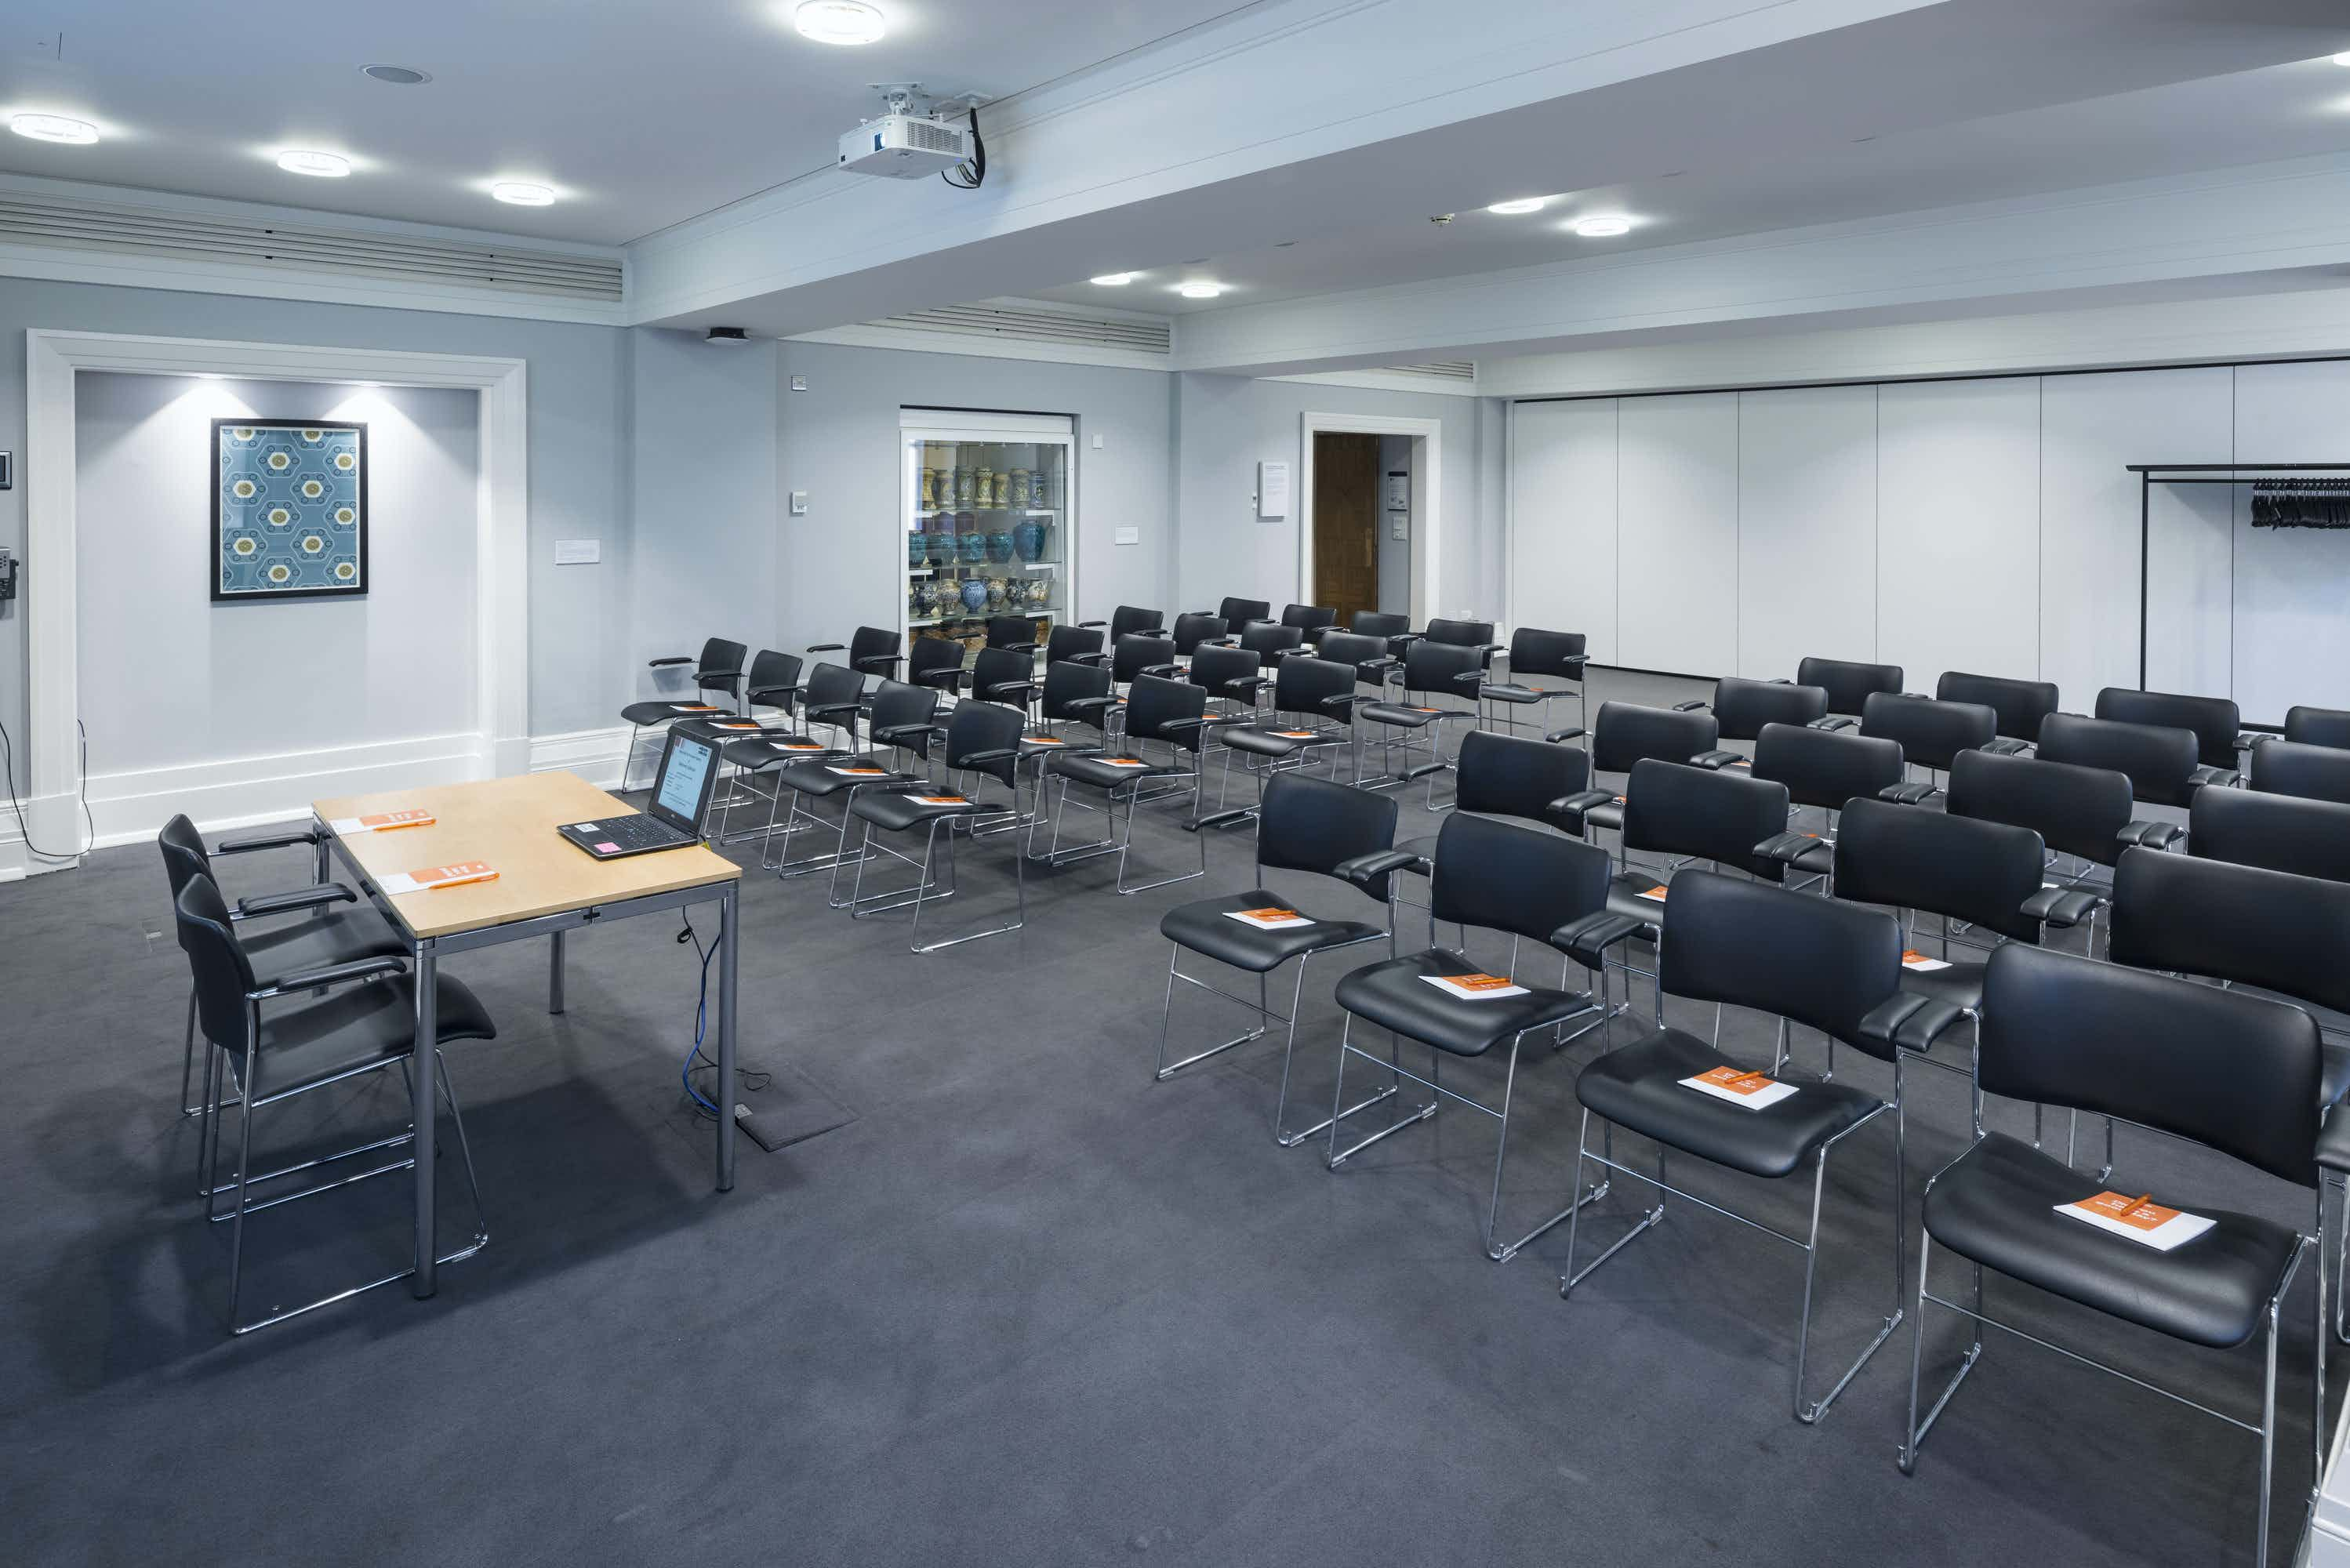 Franks Room, Event Spaces at Wellcome Collection